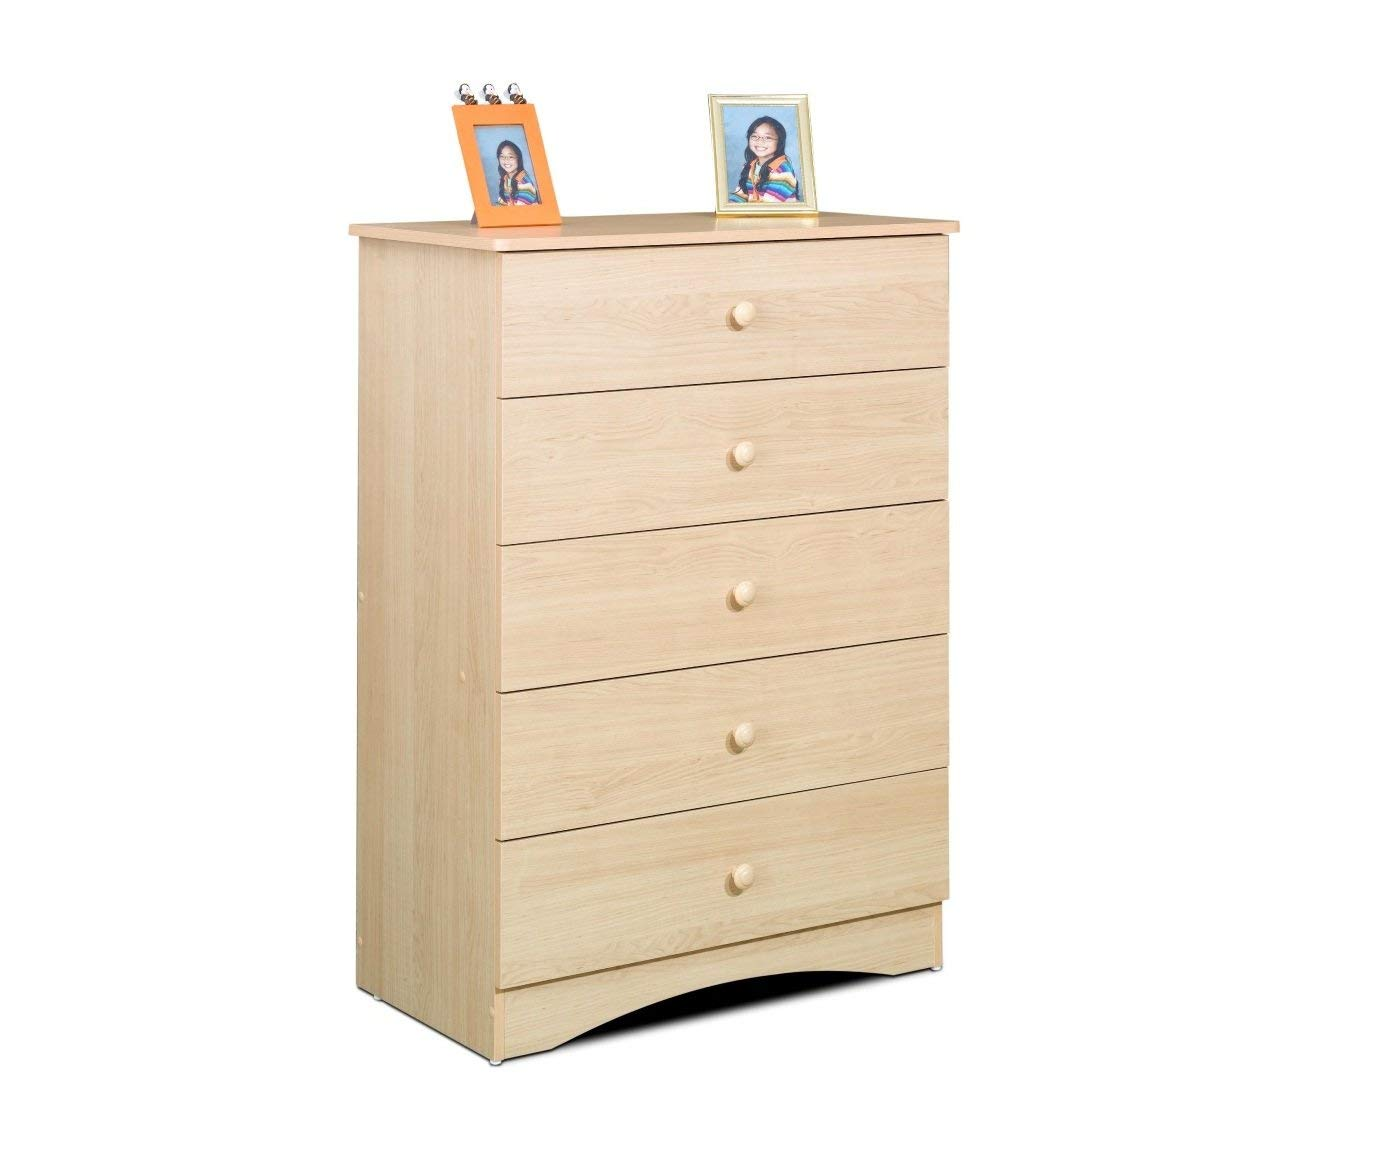 Stylish Bedroom 5 Drawer Chest With Elegant Design, Solid Wood Drawer Knob, Metal Drawer Glides, Engineered Wood Construction, Lock Quick Assembly System, Natural Maple Laminate Finish For Protection